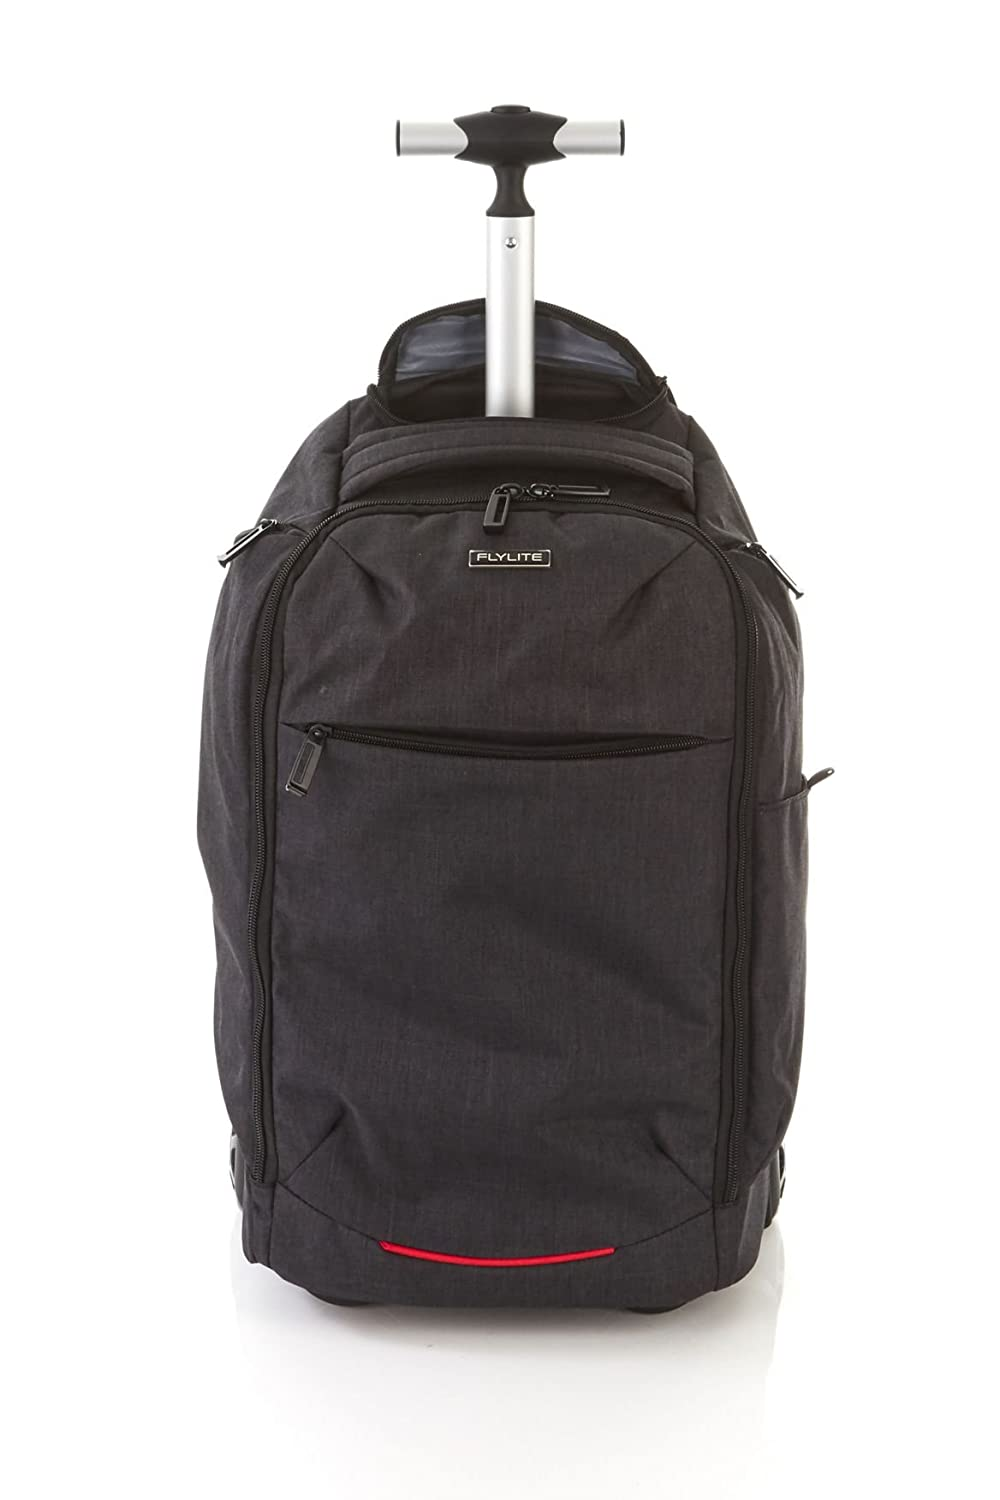 High Sierra Wheeled Backpack Strandbags- Fenix Toulouse Handball b928aebfd6d2a